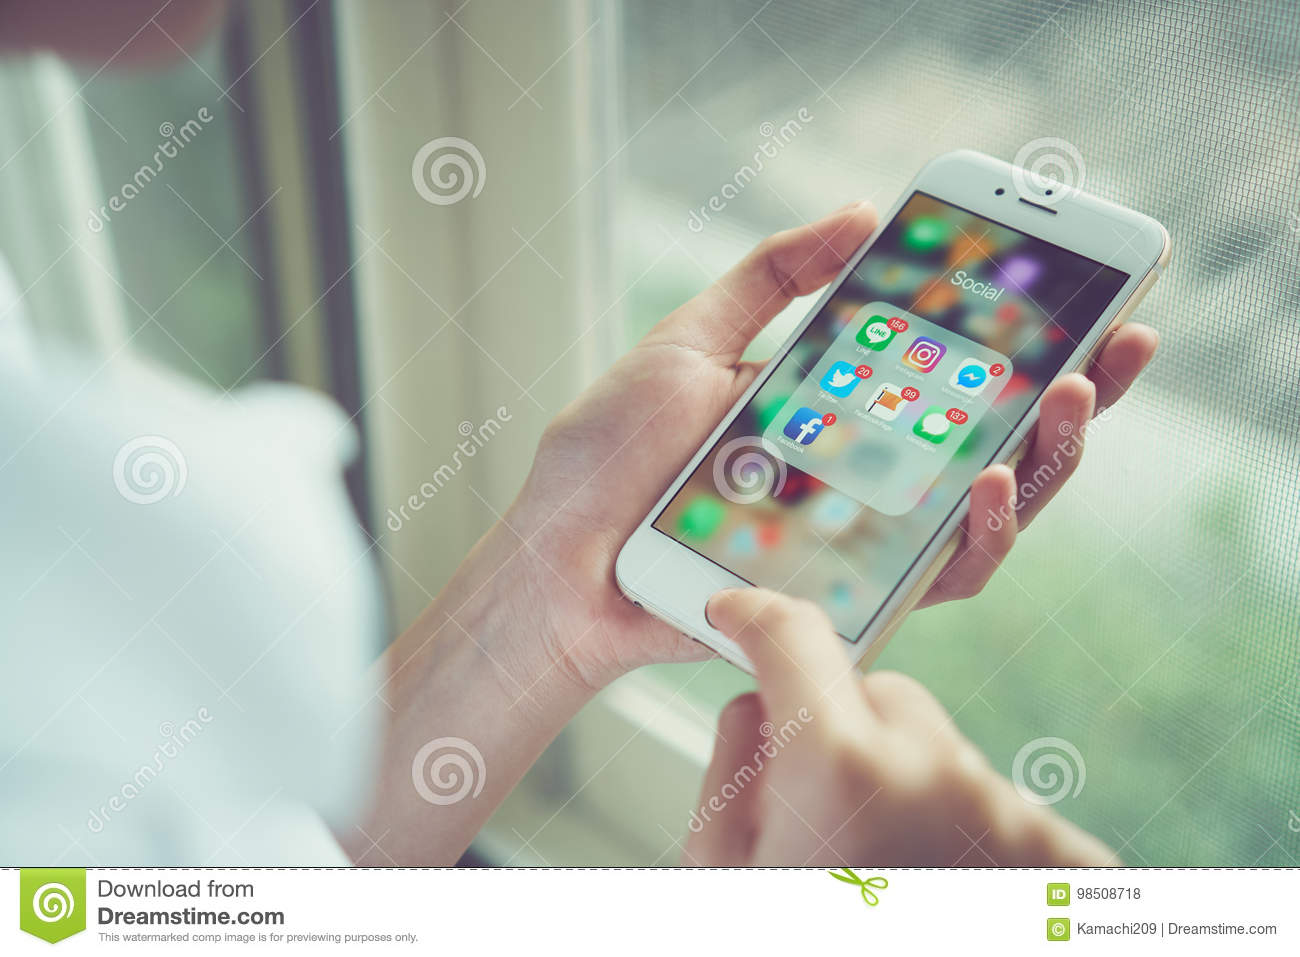 Bangkok, Thailand - August 23, 2017 : woman using iPhone of show display app Social media screen. The phone is a daily necessity.